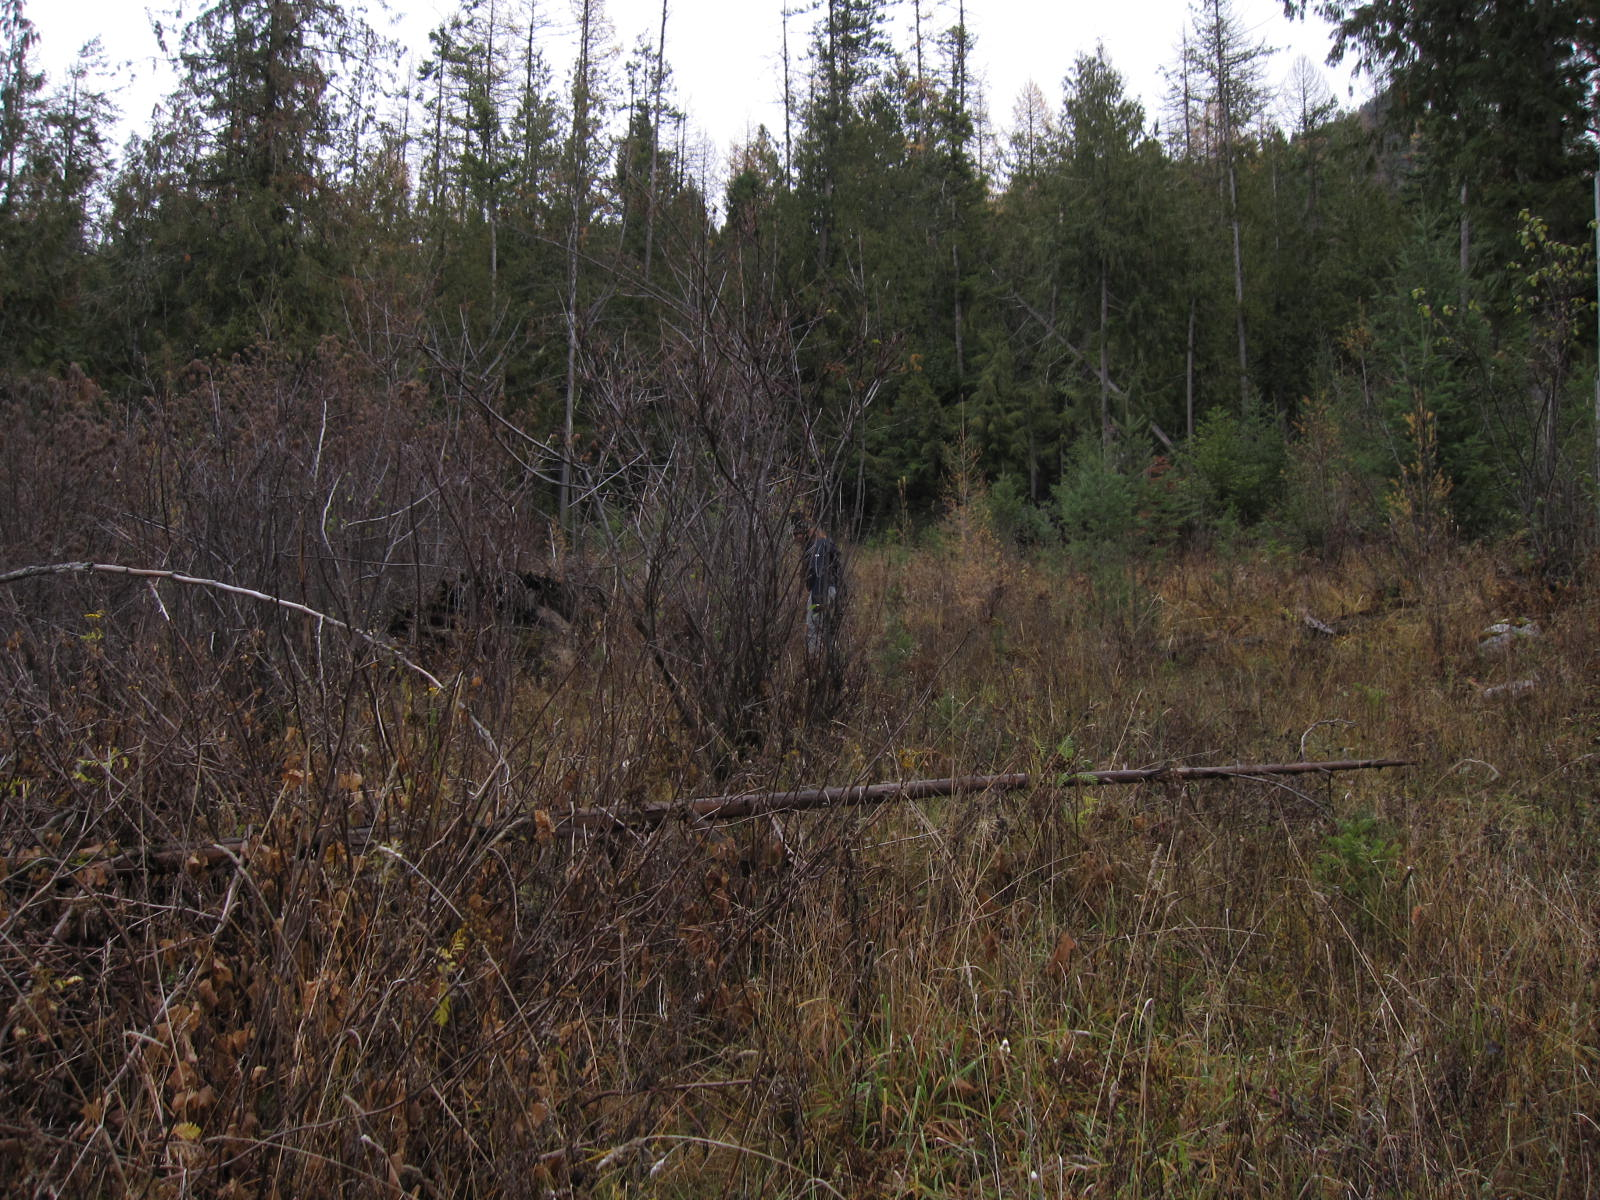 Terreno per Vendita alle ore : Three lots with nice views of Lake Pend Oreille B3 L5-7 Pend Oreille Ave Bayview, Idaho, 83803 Stati Uniti